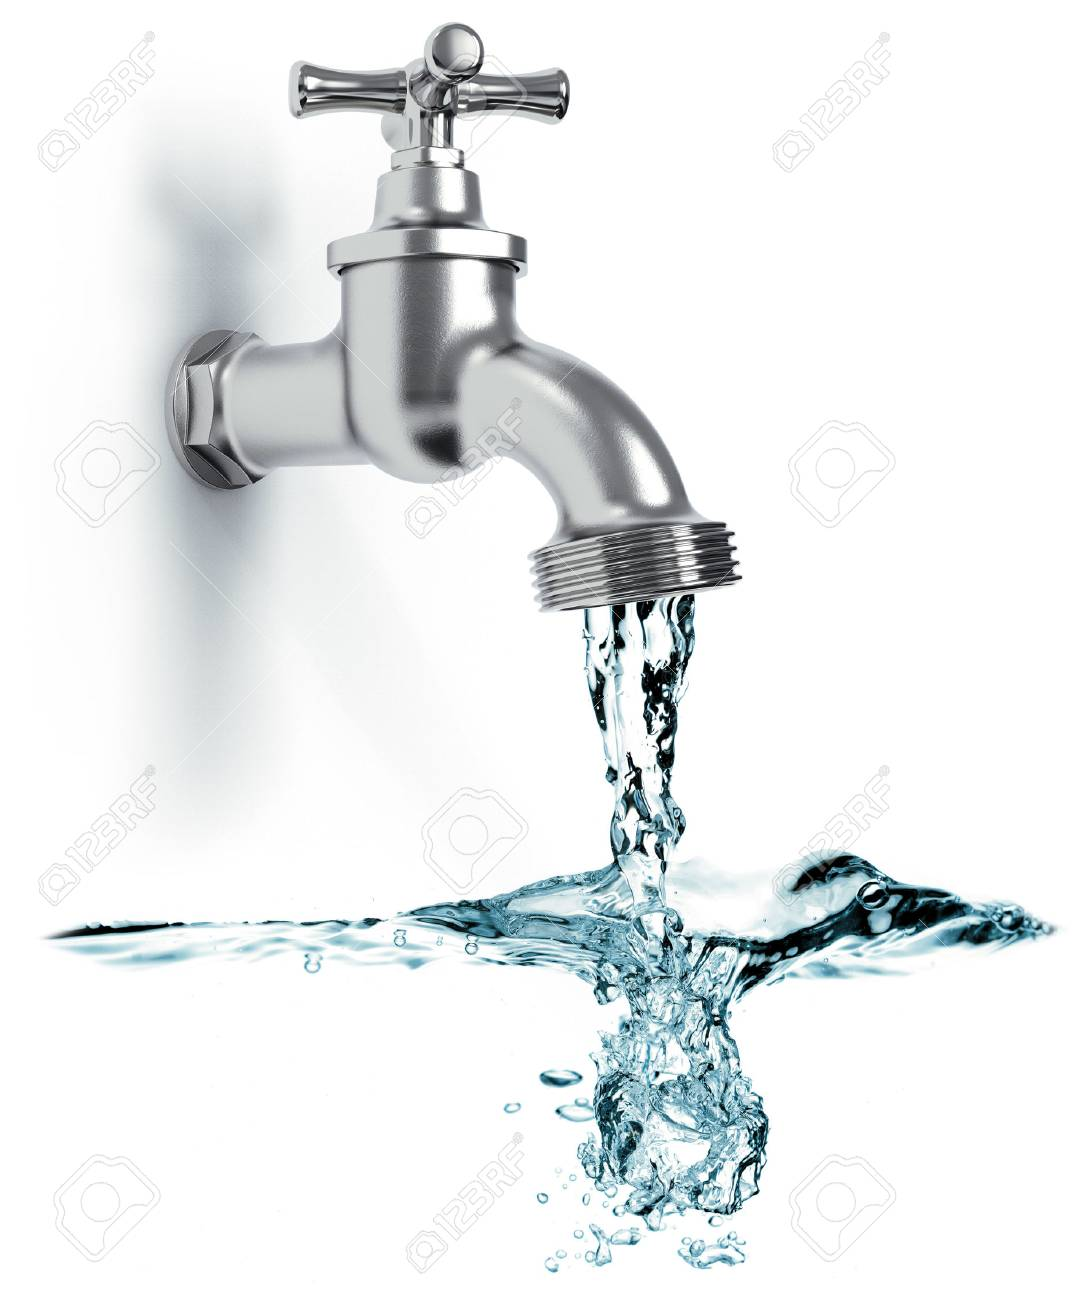 Faucet with flowing water and waves isolated on white background 3D rendering - 90861909